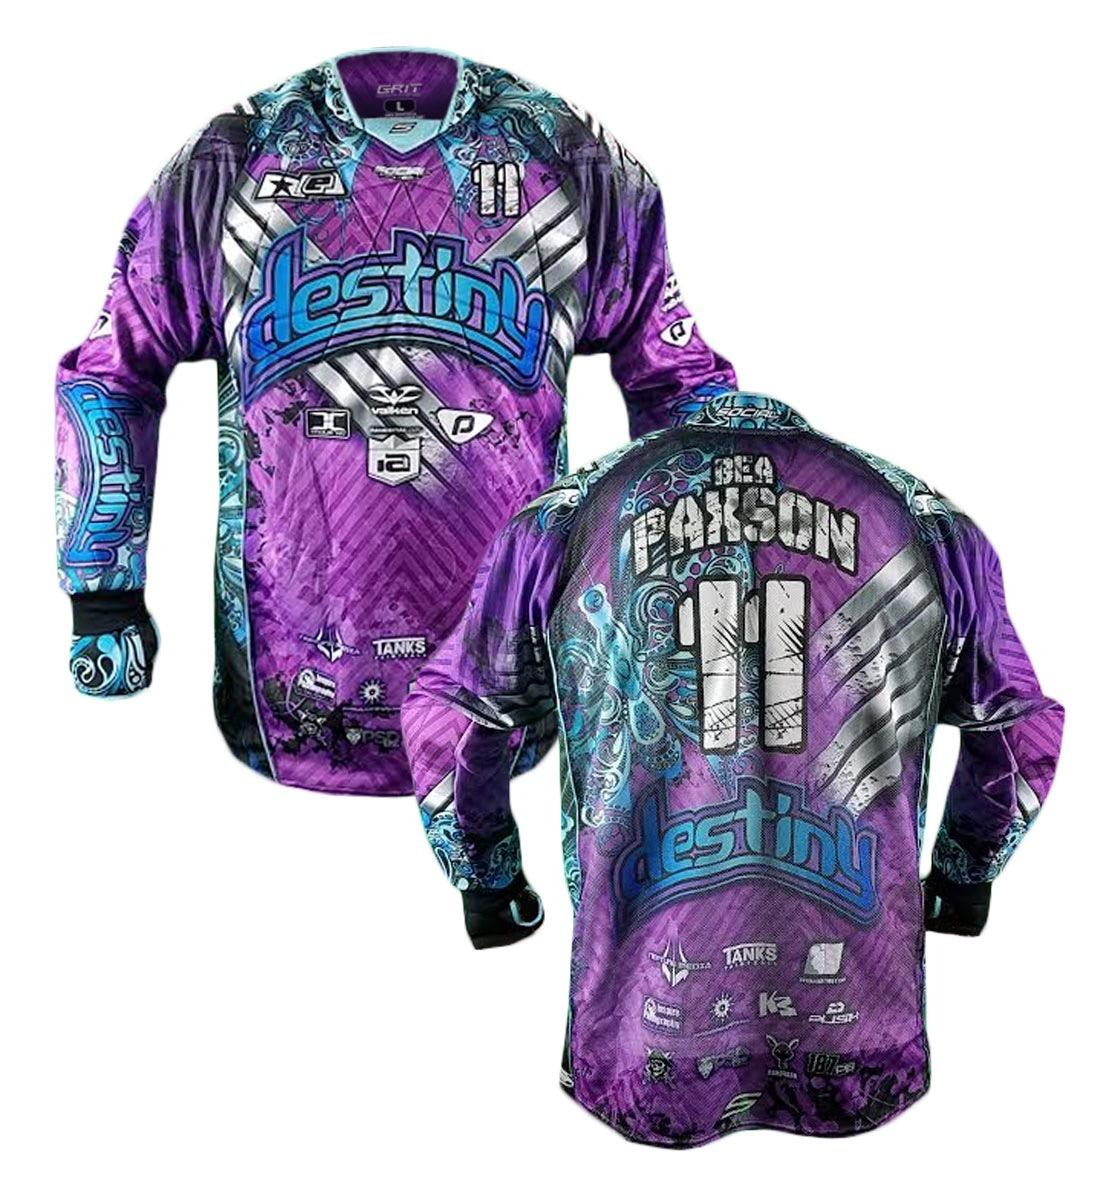 Custom your logo made China hk surge teal tops personalizado sublimation camo paintball jersey